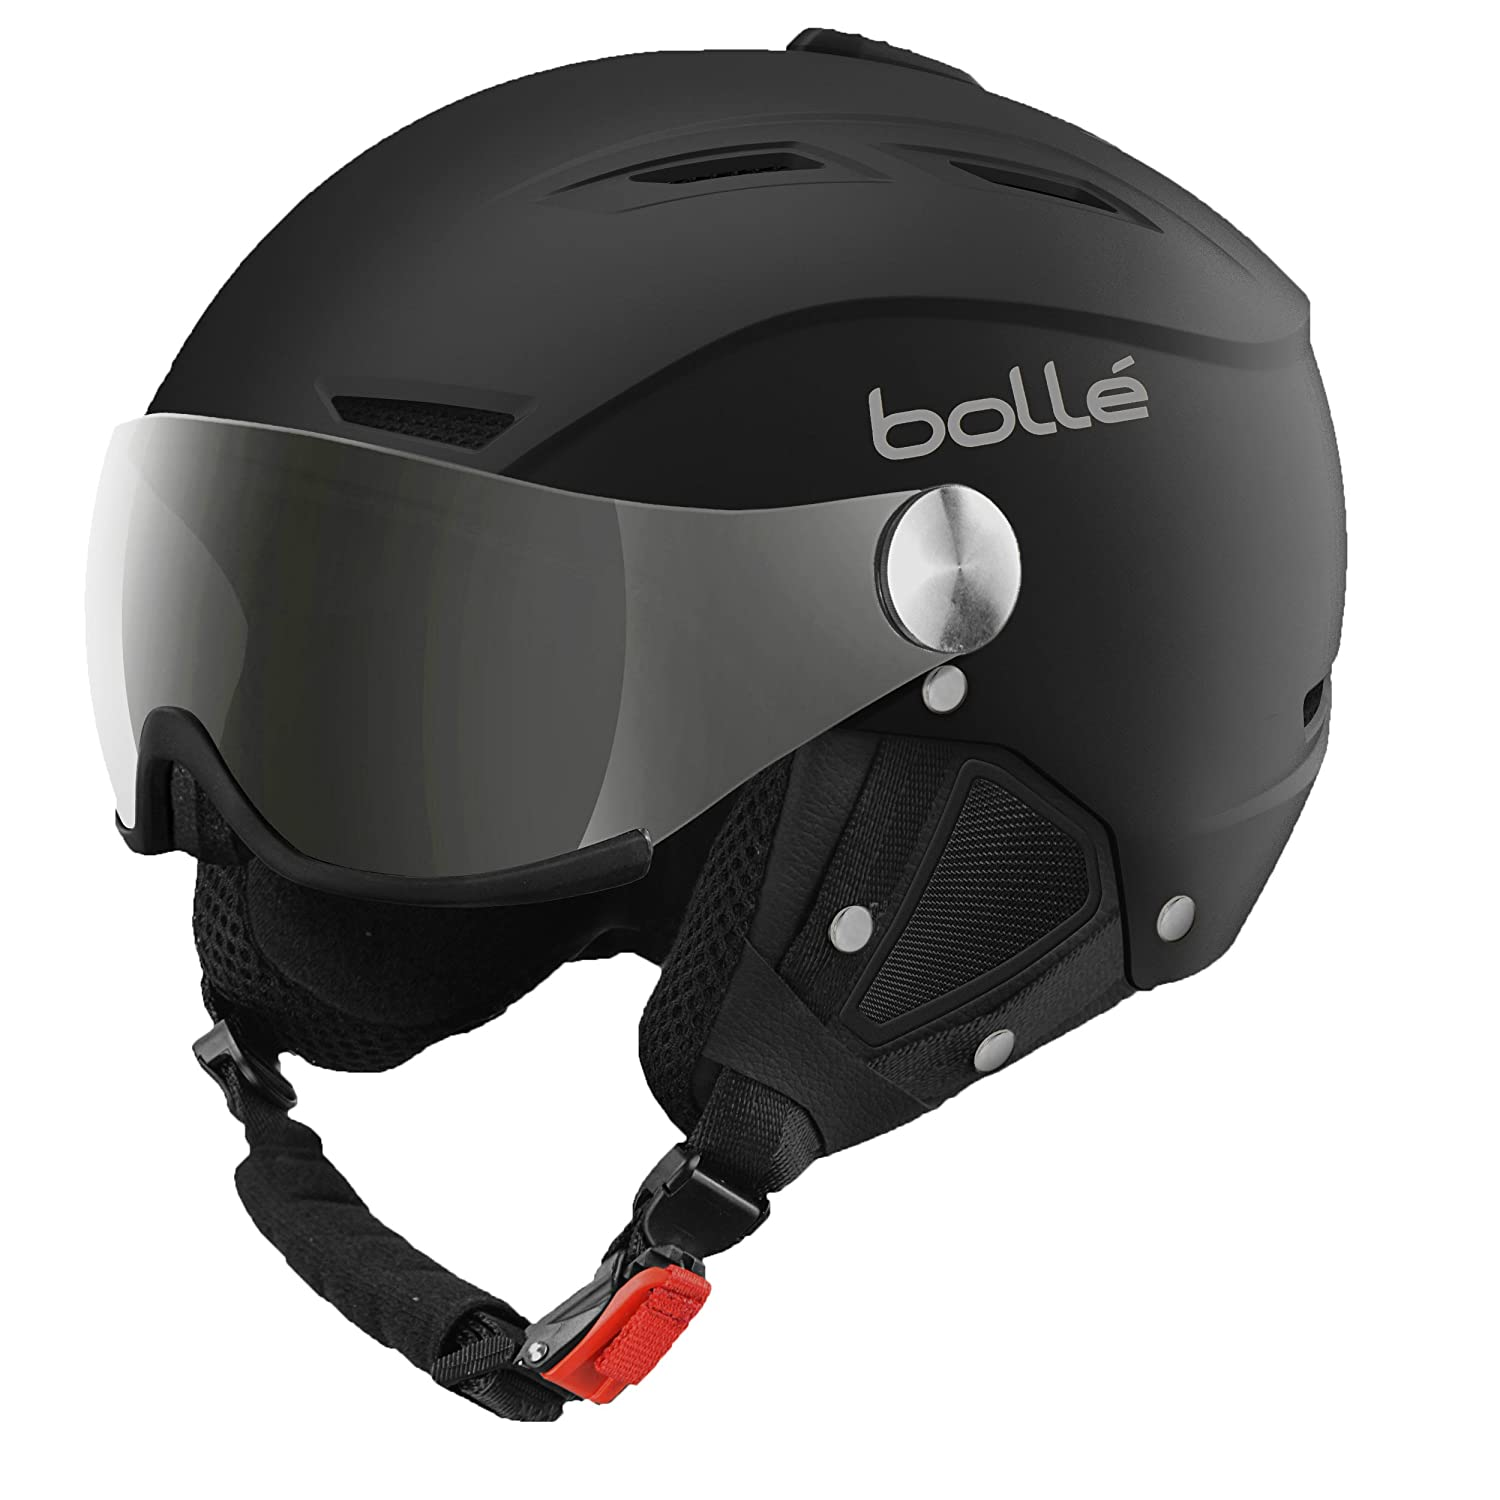 Bollé Casco de esquí Backline Visor Soft Black Silver Gun Lemon